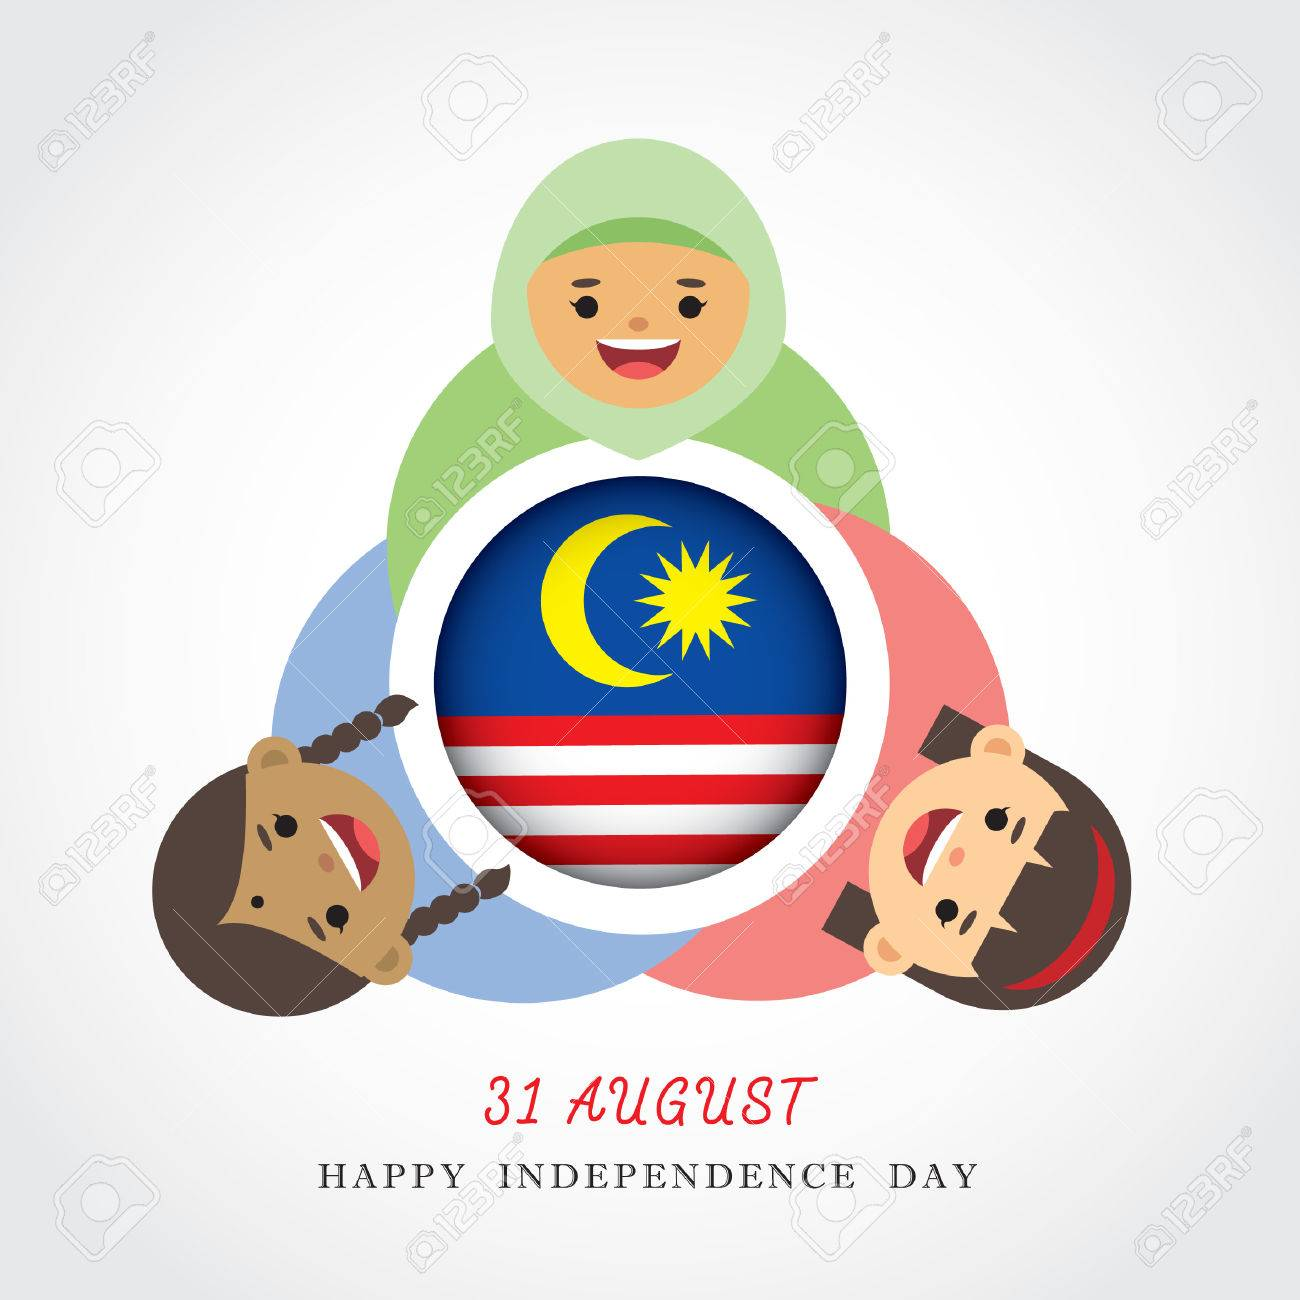 Malaysia National Independence Day Illustration Cute Cartoon